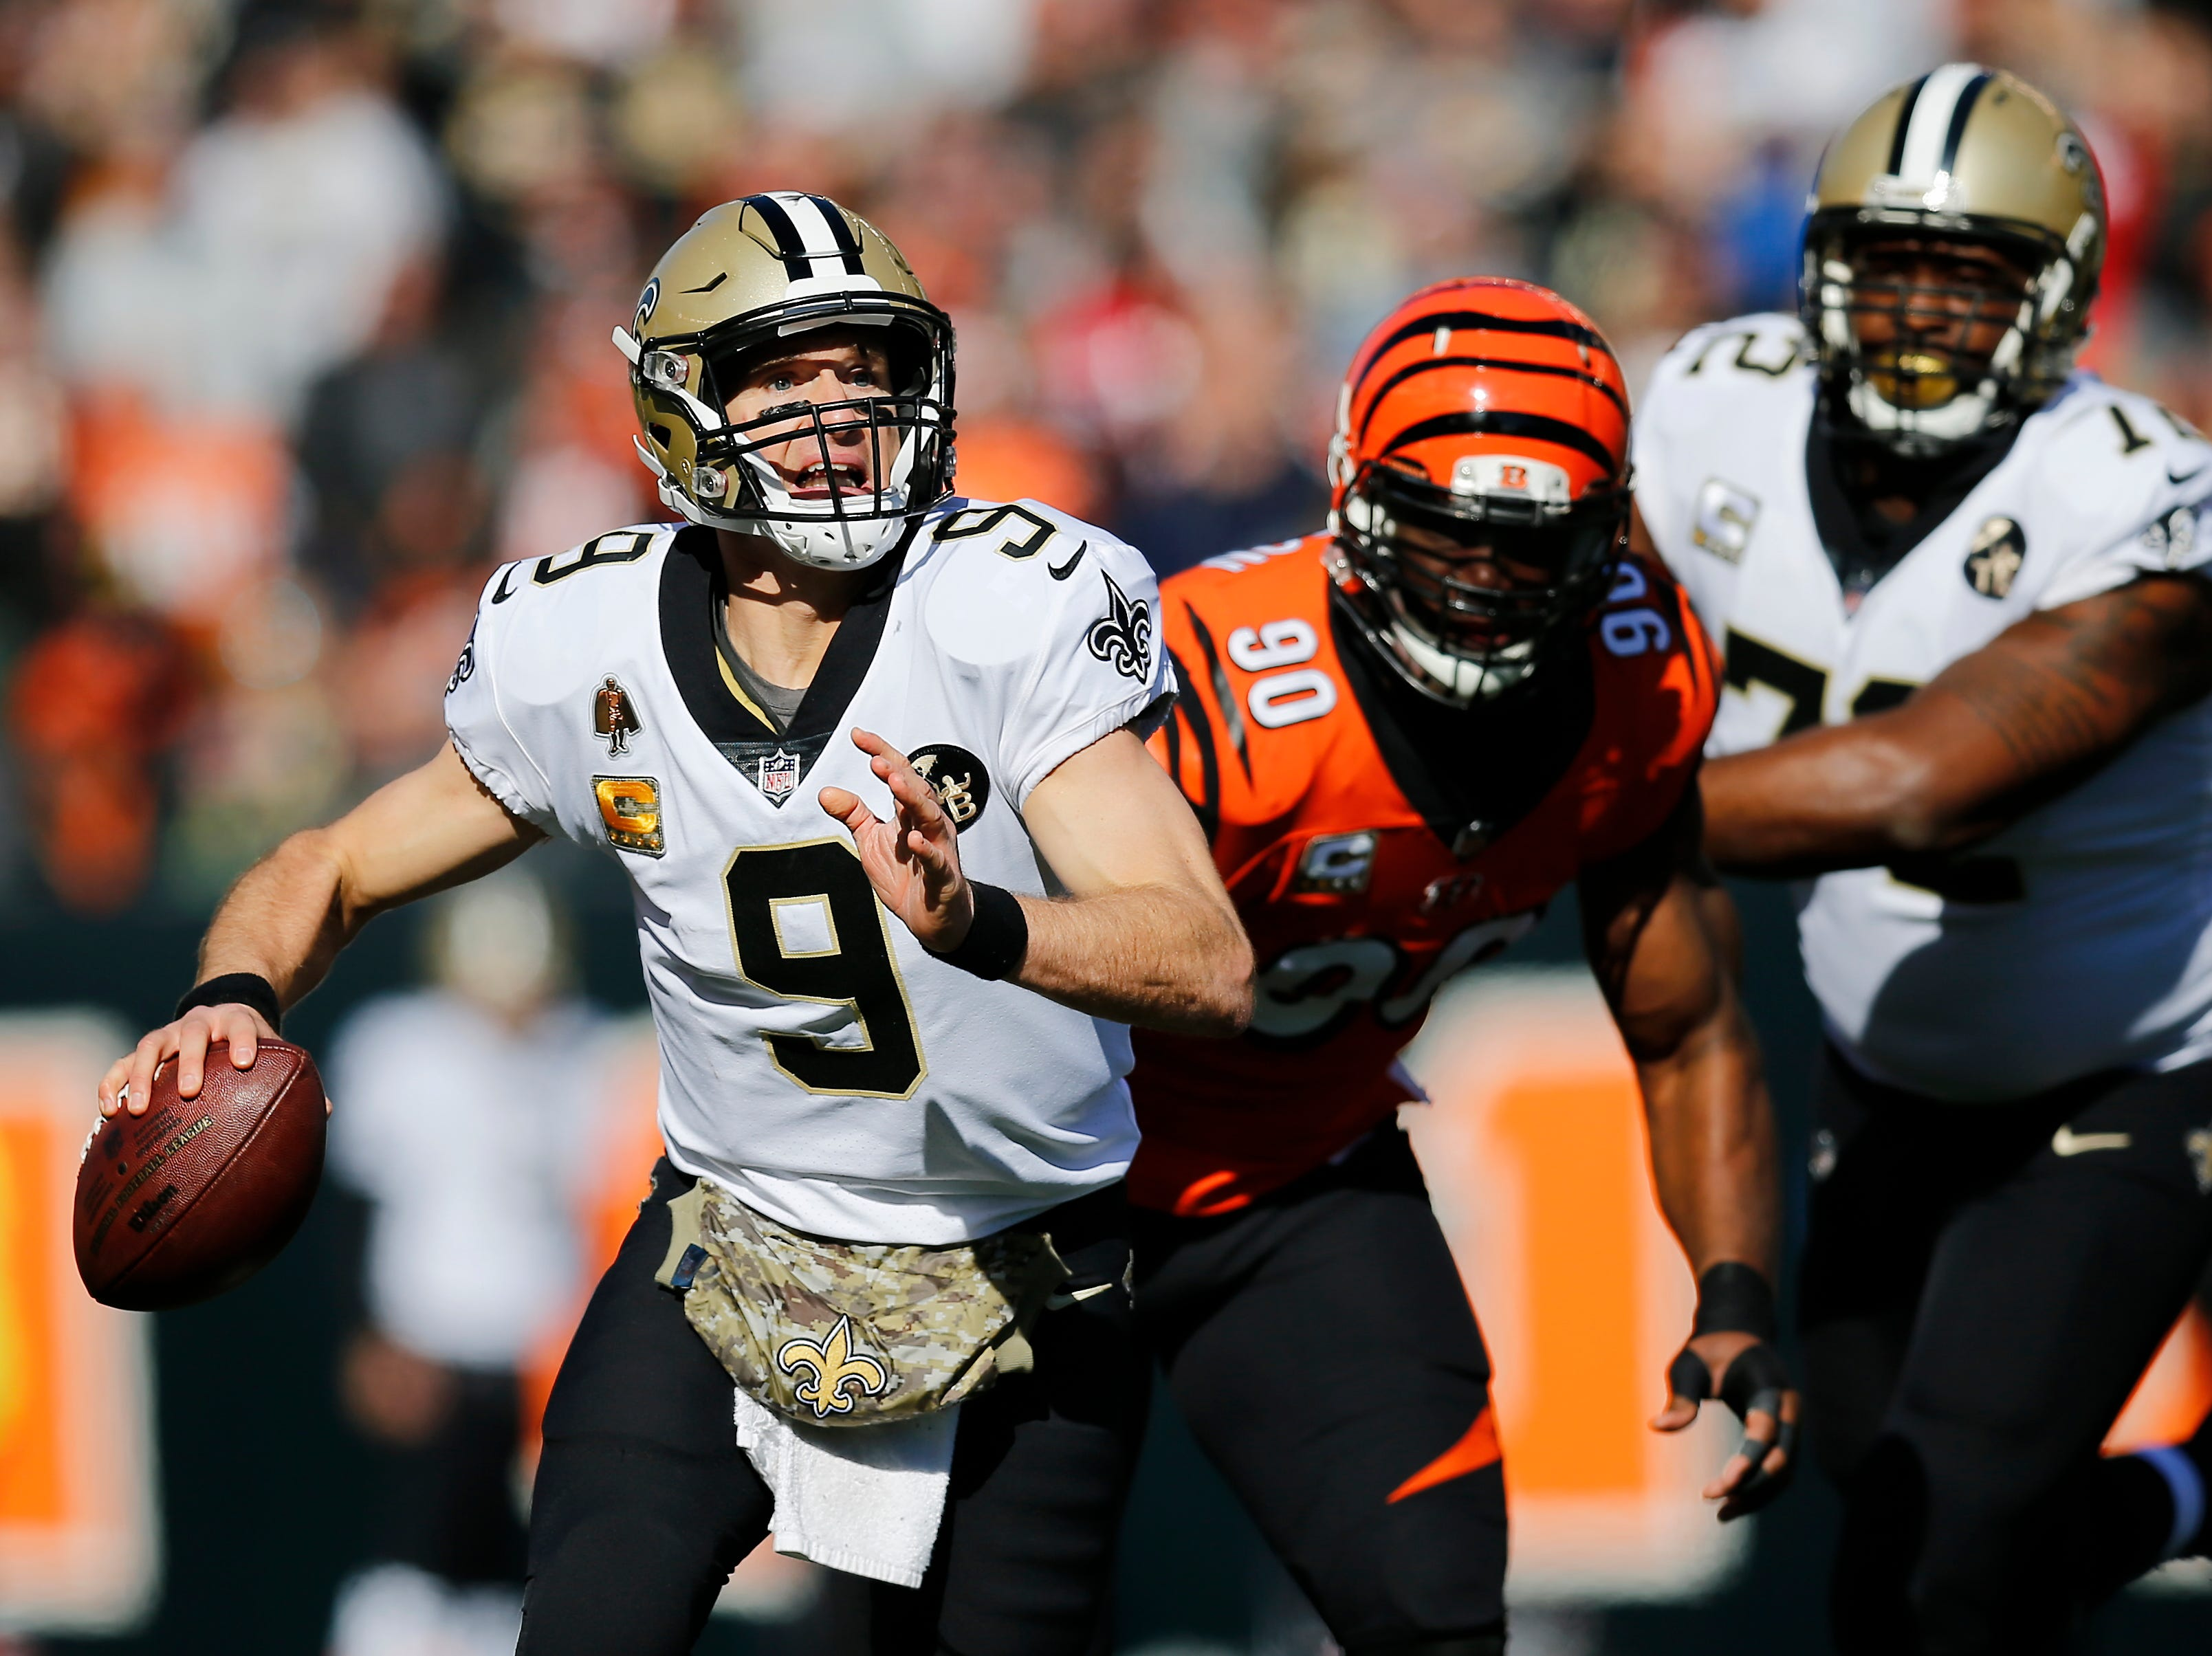 New Orleans Saints quarterback Drew Brees (9) scrambles as he's pursued by Cincinnati Bengals defensive end Michael Johnson (90) in the first quarter of the NFL Week 10 game between the Cincinnati Bengals and the New Orleans Saints at Paul Brown Stadium in downtown Cincinnati on Sunday, Nov. 11, 2018. The Saints led 35-7 at halftime.